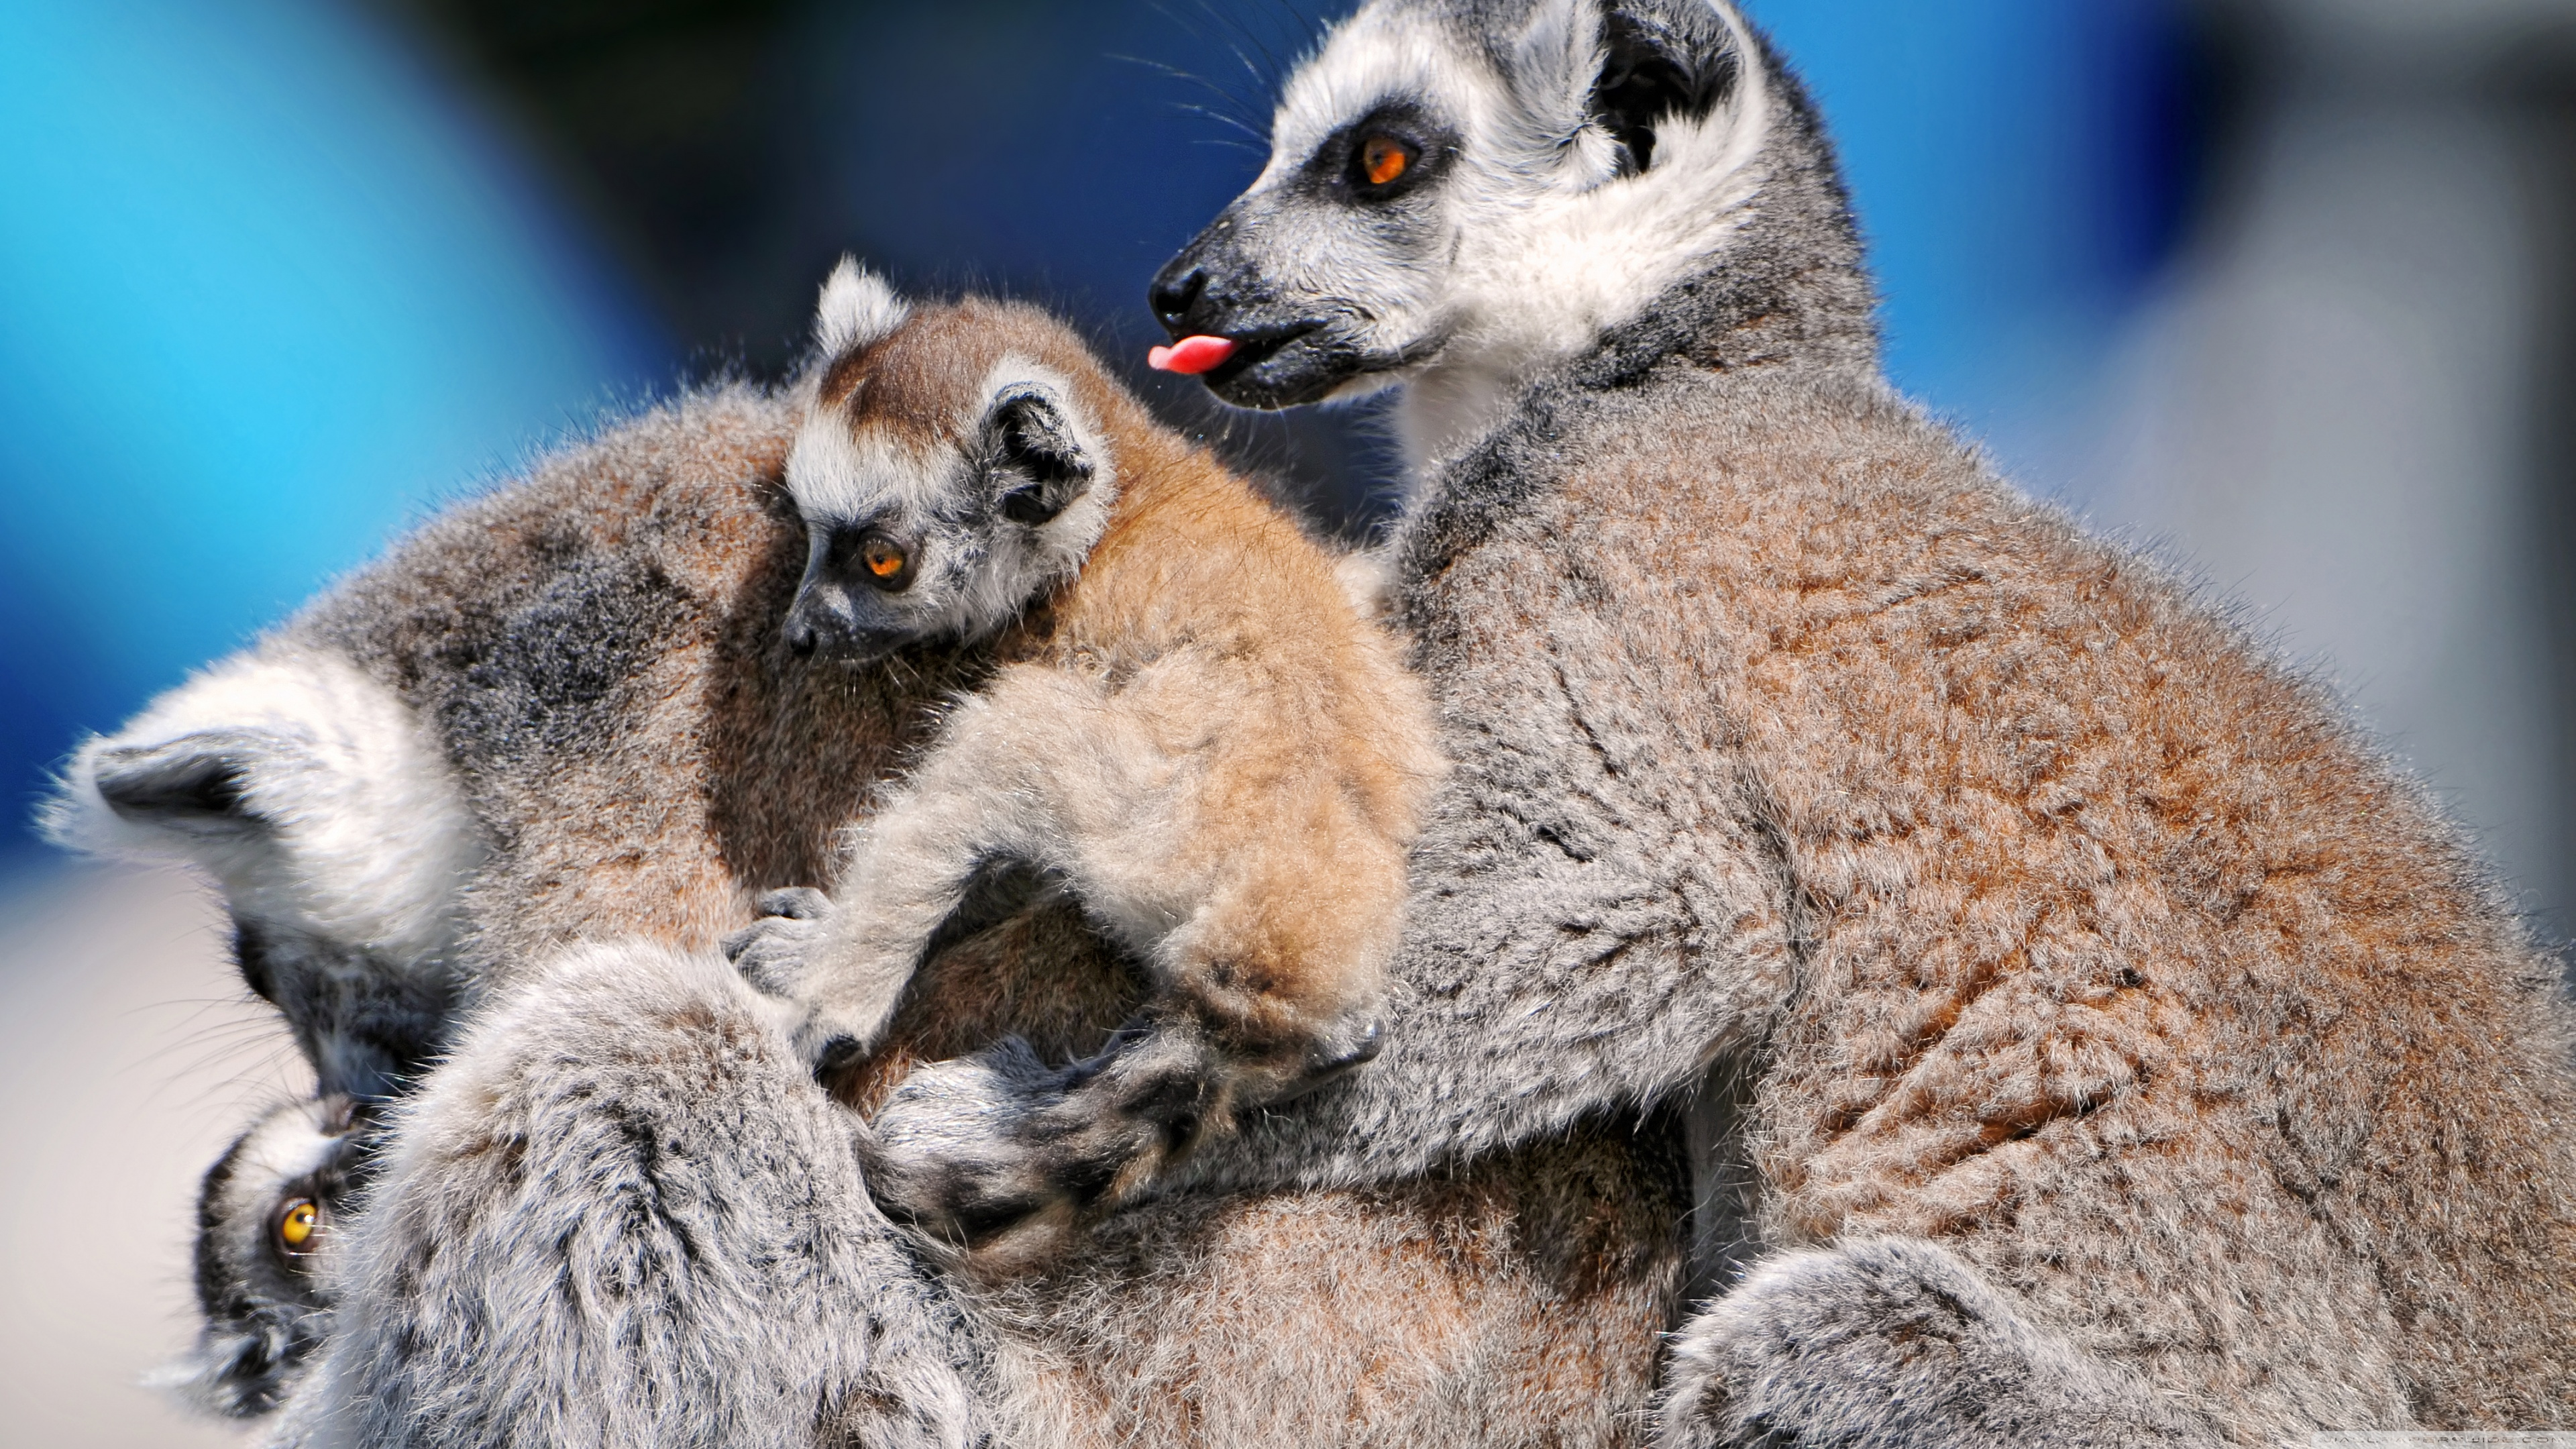 download wallpaper 3840x2160 lemur-#main